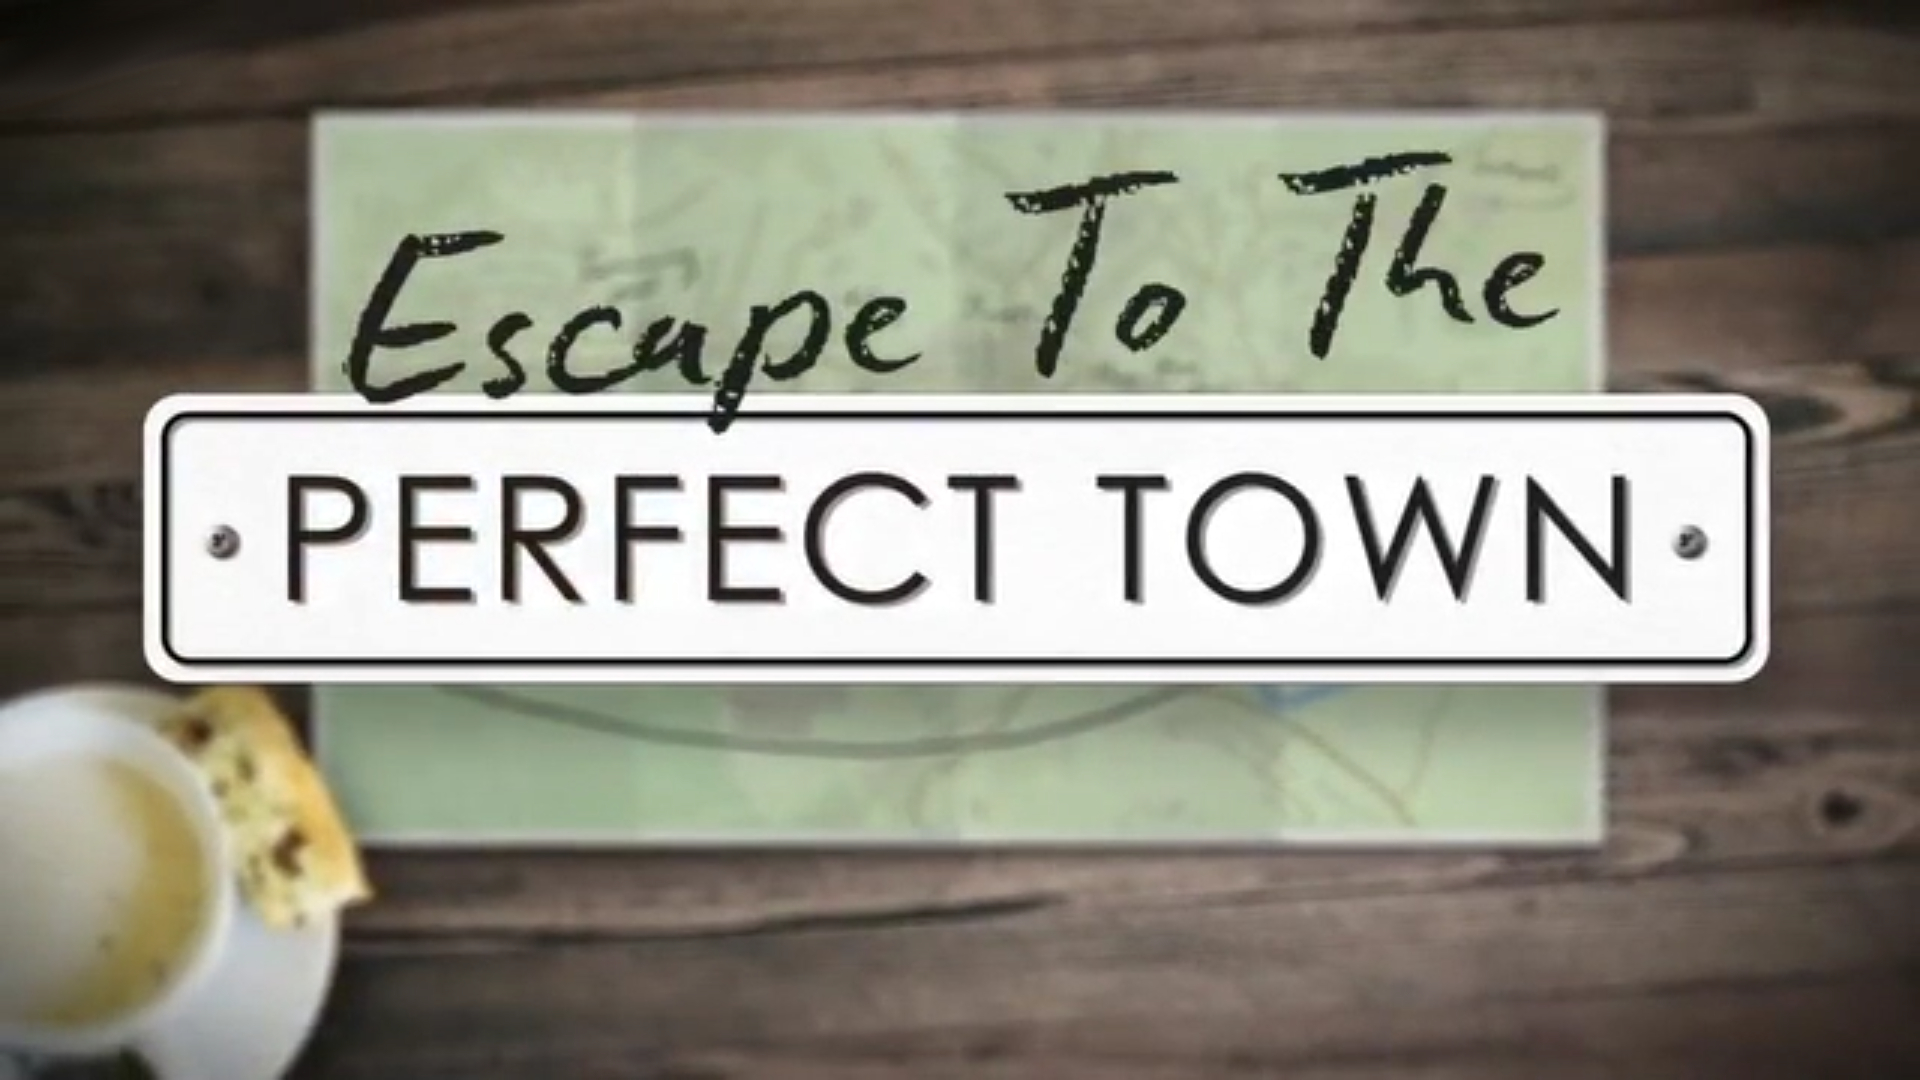 Escape to the Perfect Town